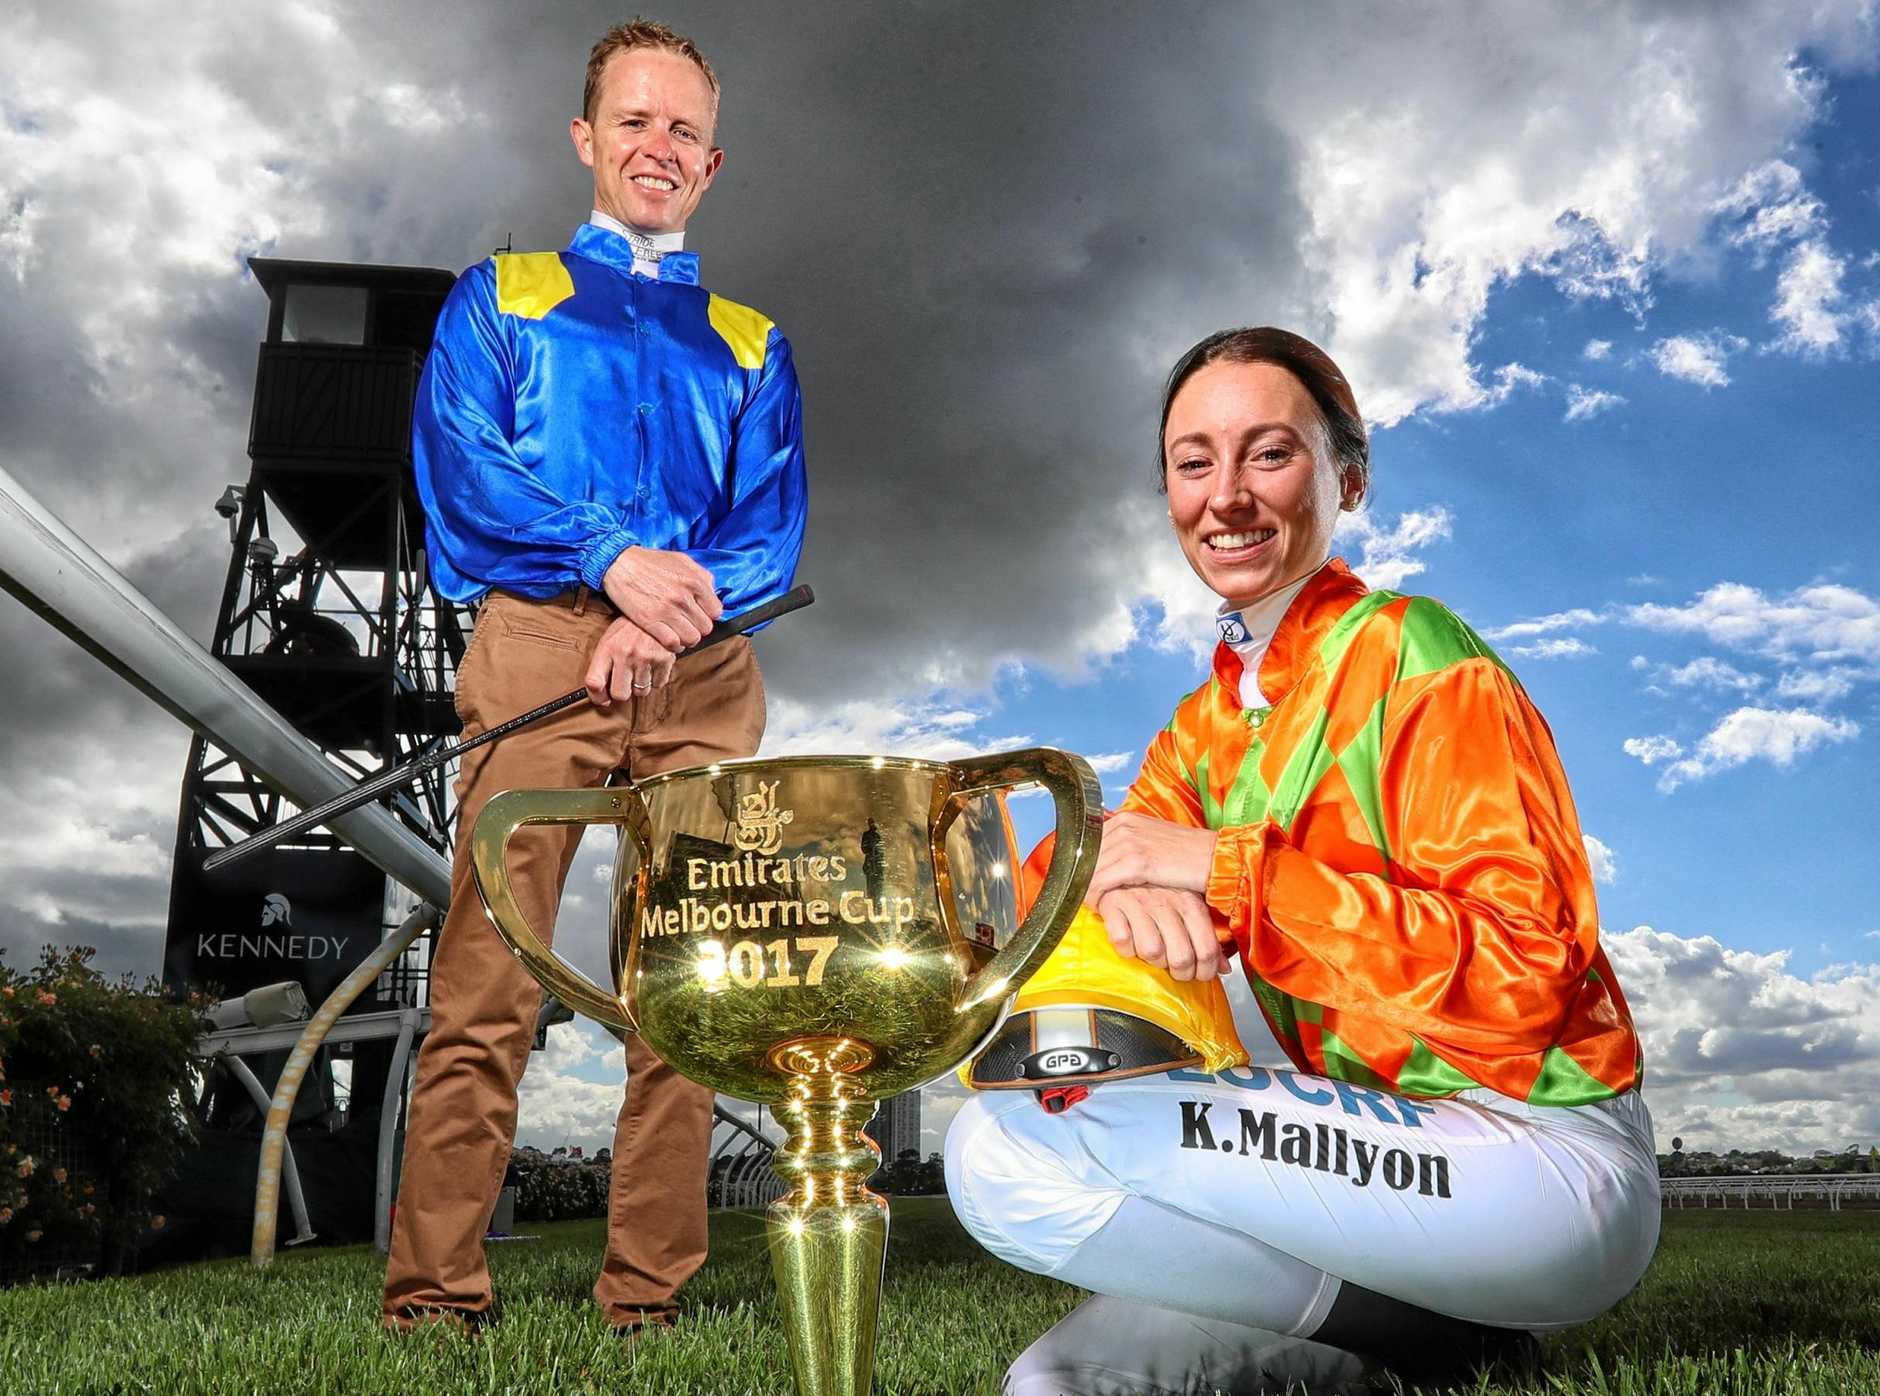 Jockeys Kerrin McEvoy and Katelyn Mallyon ready for the Melbourne Cup on Tuesday.